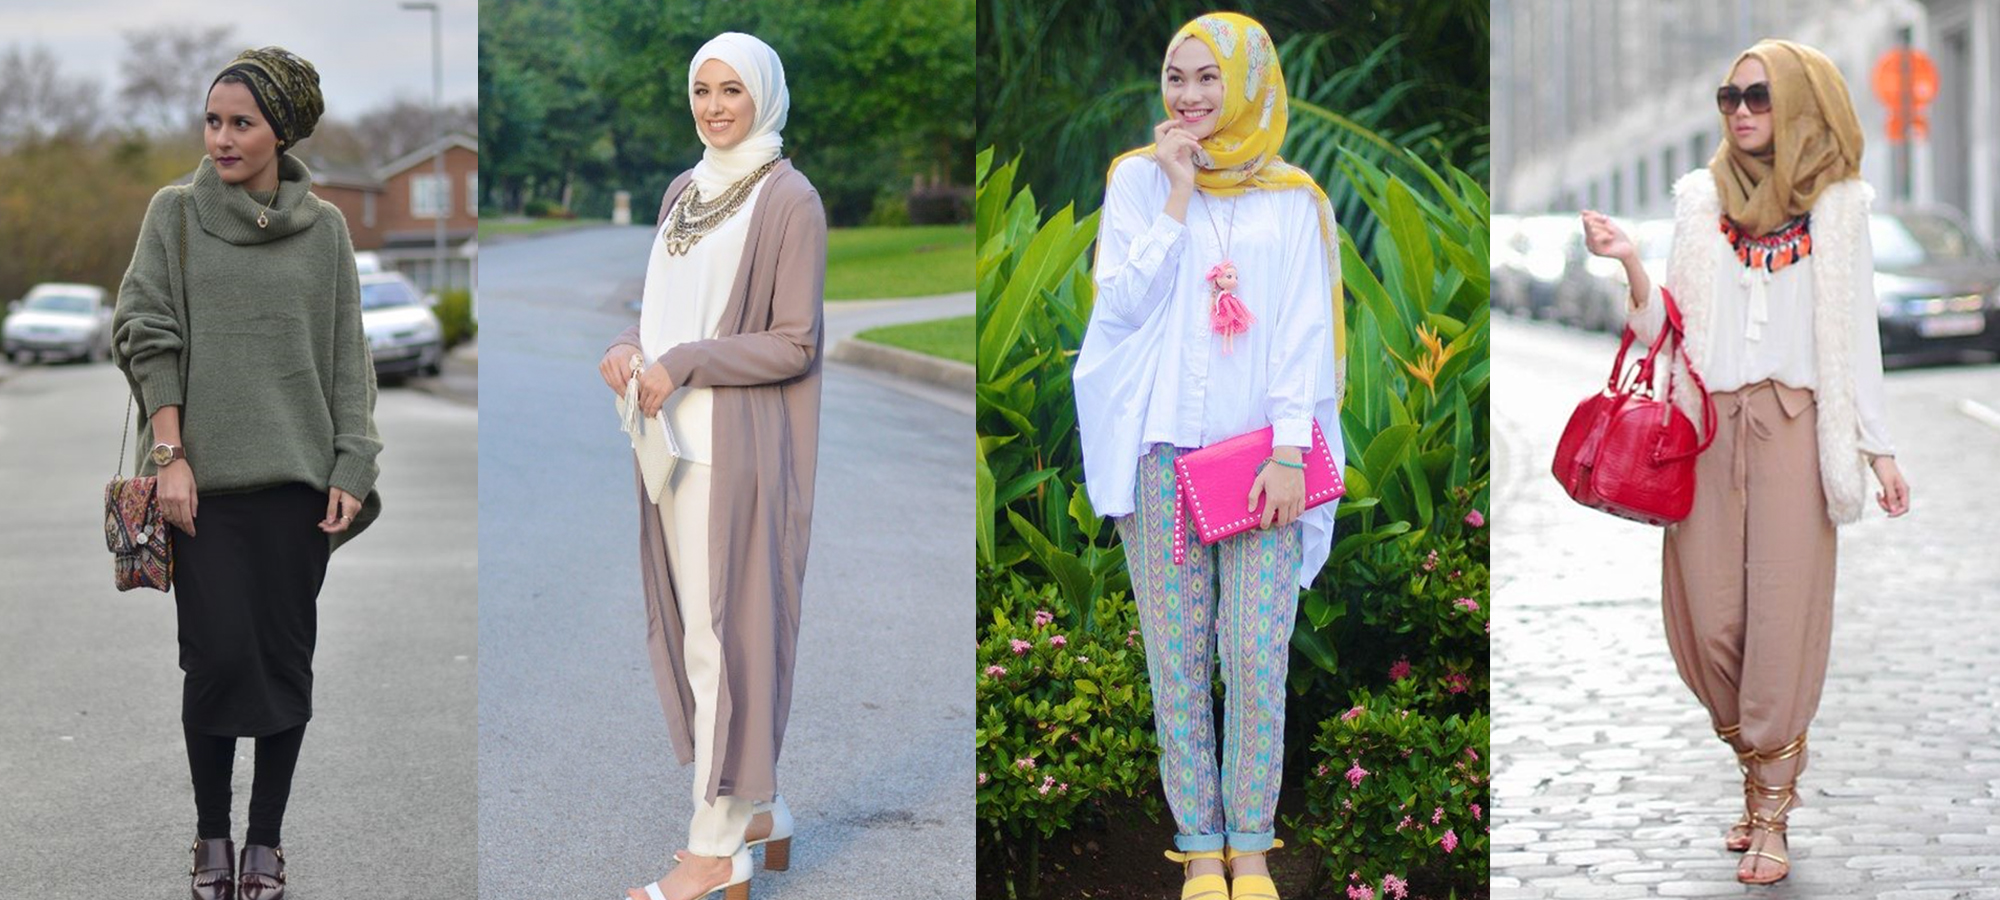 Why You Shouldnt Worry About Wearing Hijab To Job Interviews Mvslim